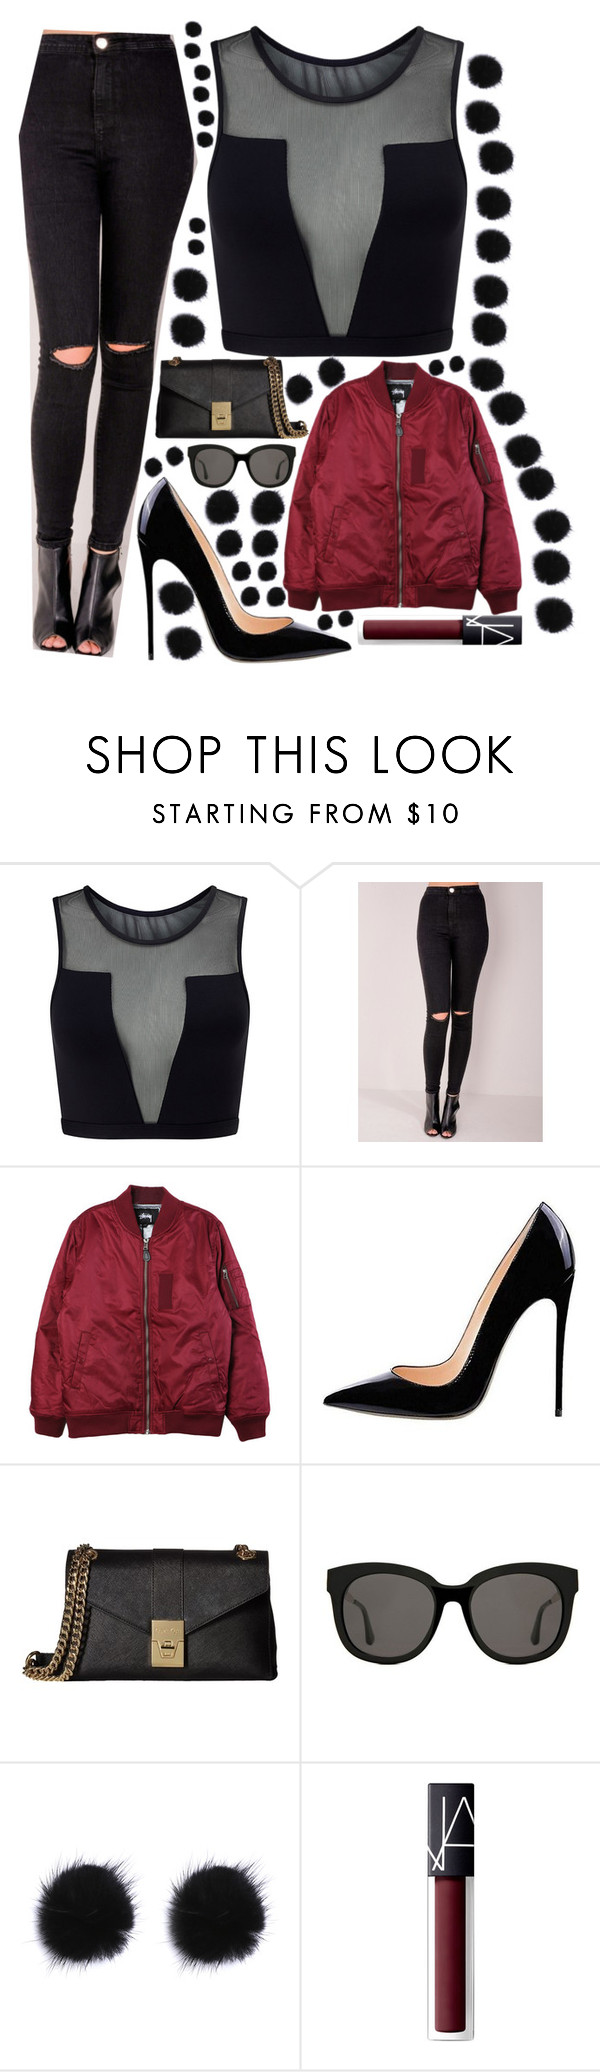 """Untitled #214"" by harrystylessoulmate ❤ liked on Polyvore featuring Varley, Stussy, Calvin Klein, Gentle Monster and NARS Cosmetics"